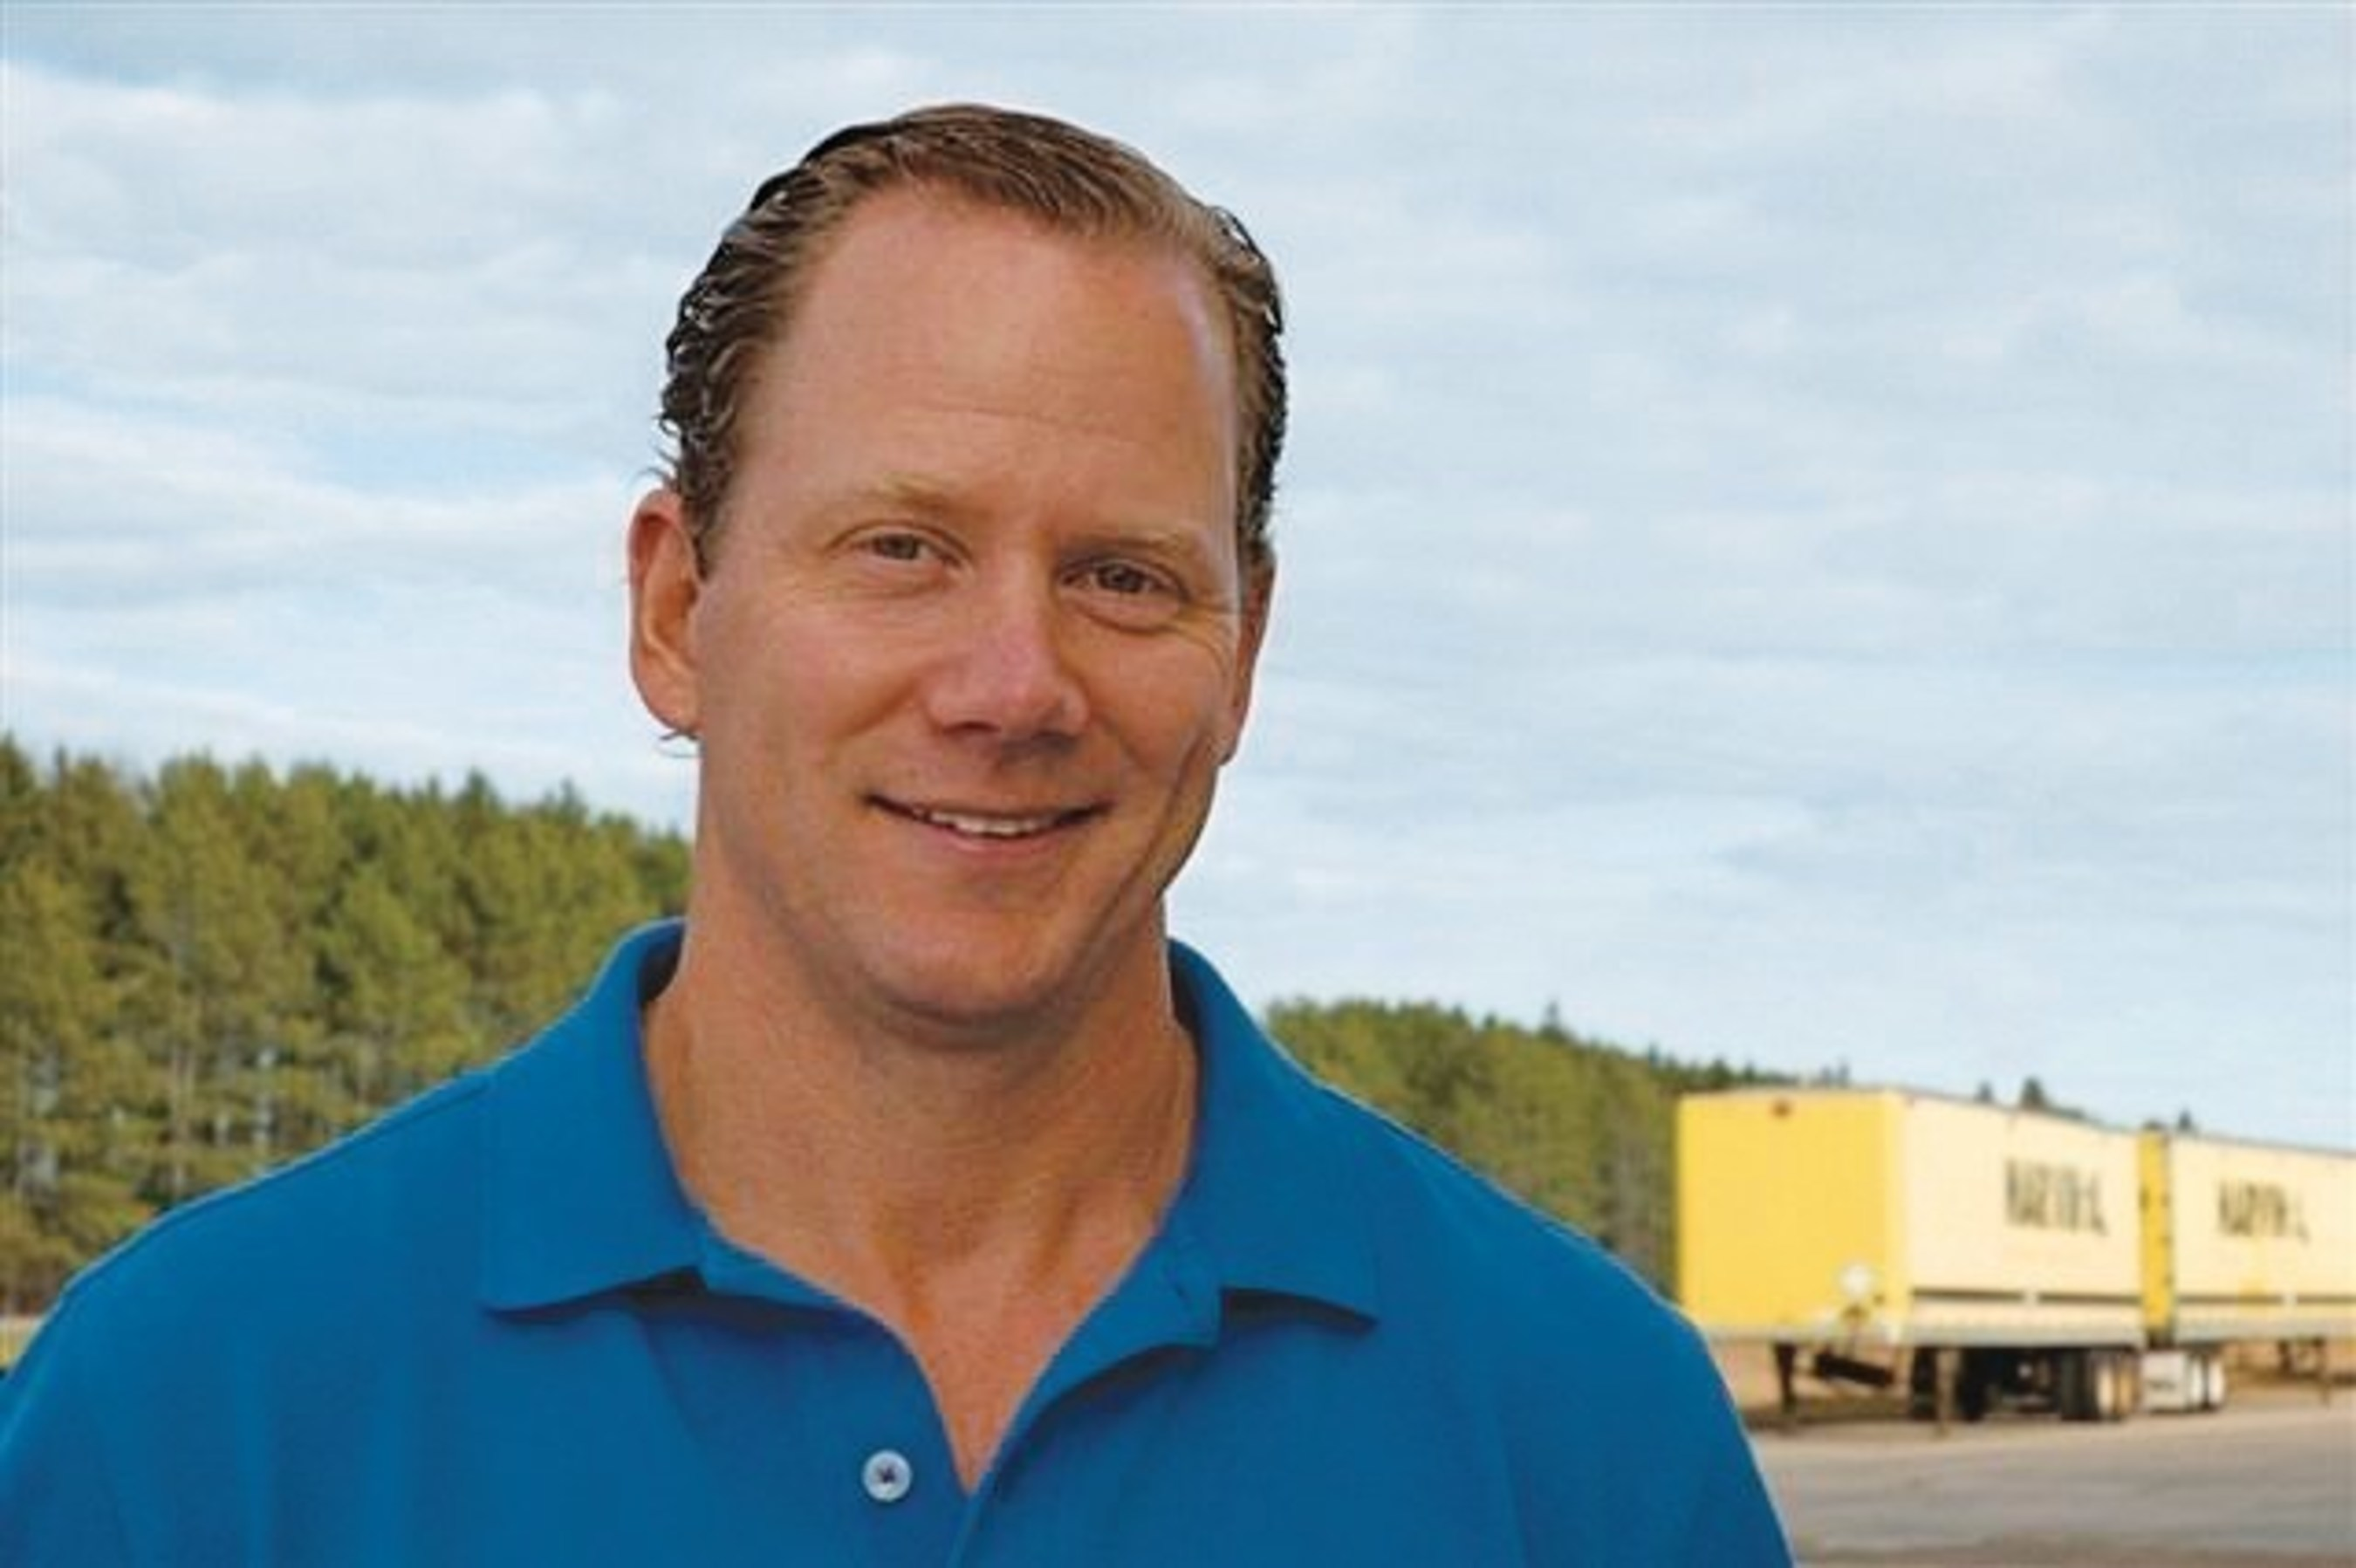 Dan Marvin was recently named Vice President of Business Development for the Marvin Companies